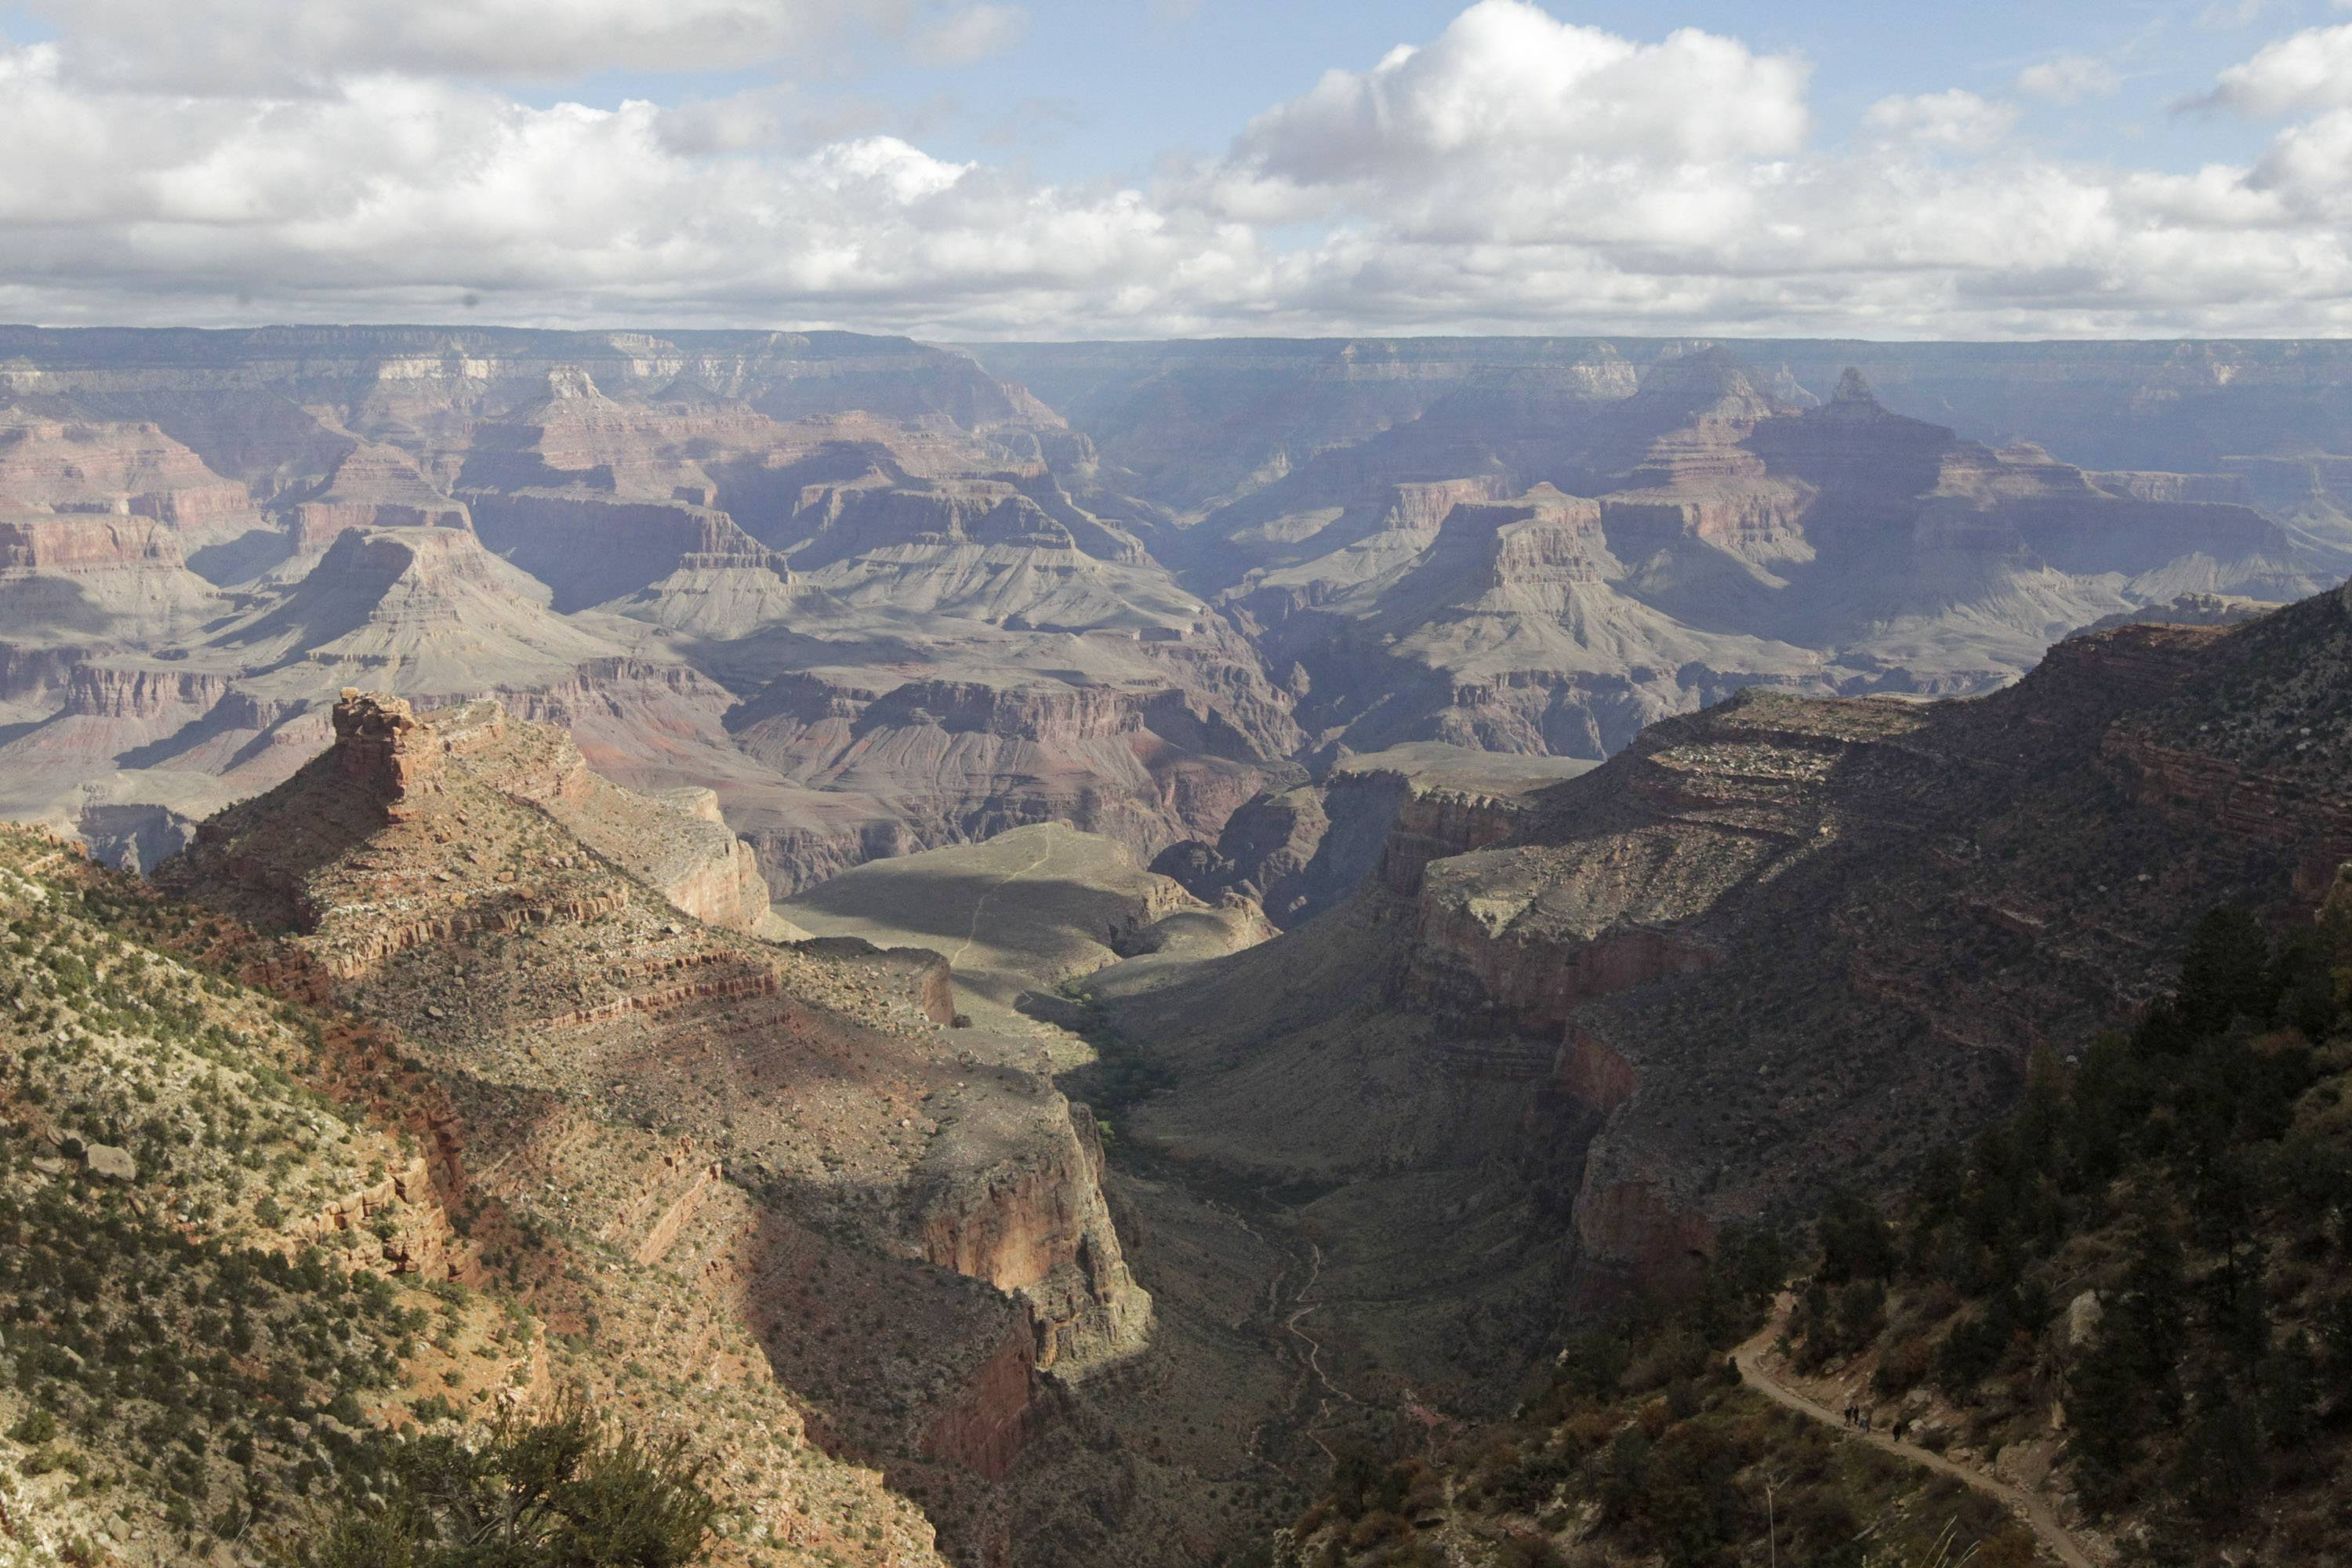 The South Rim of the Grand Canyon National Park in Arizona. The National Park Service is taking steps to ban drones from 84 million acres of public lands and waterways, saying the unmanned aircraft annoy visitors, harass wildlife and threaten safety.